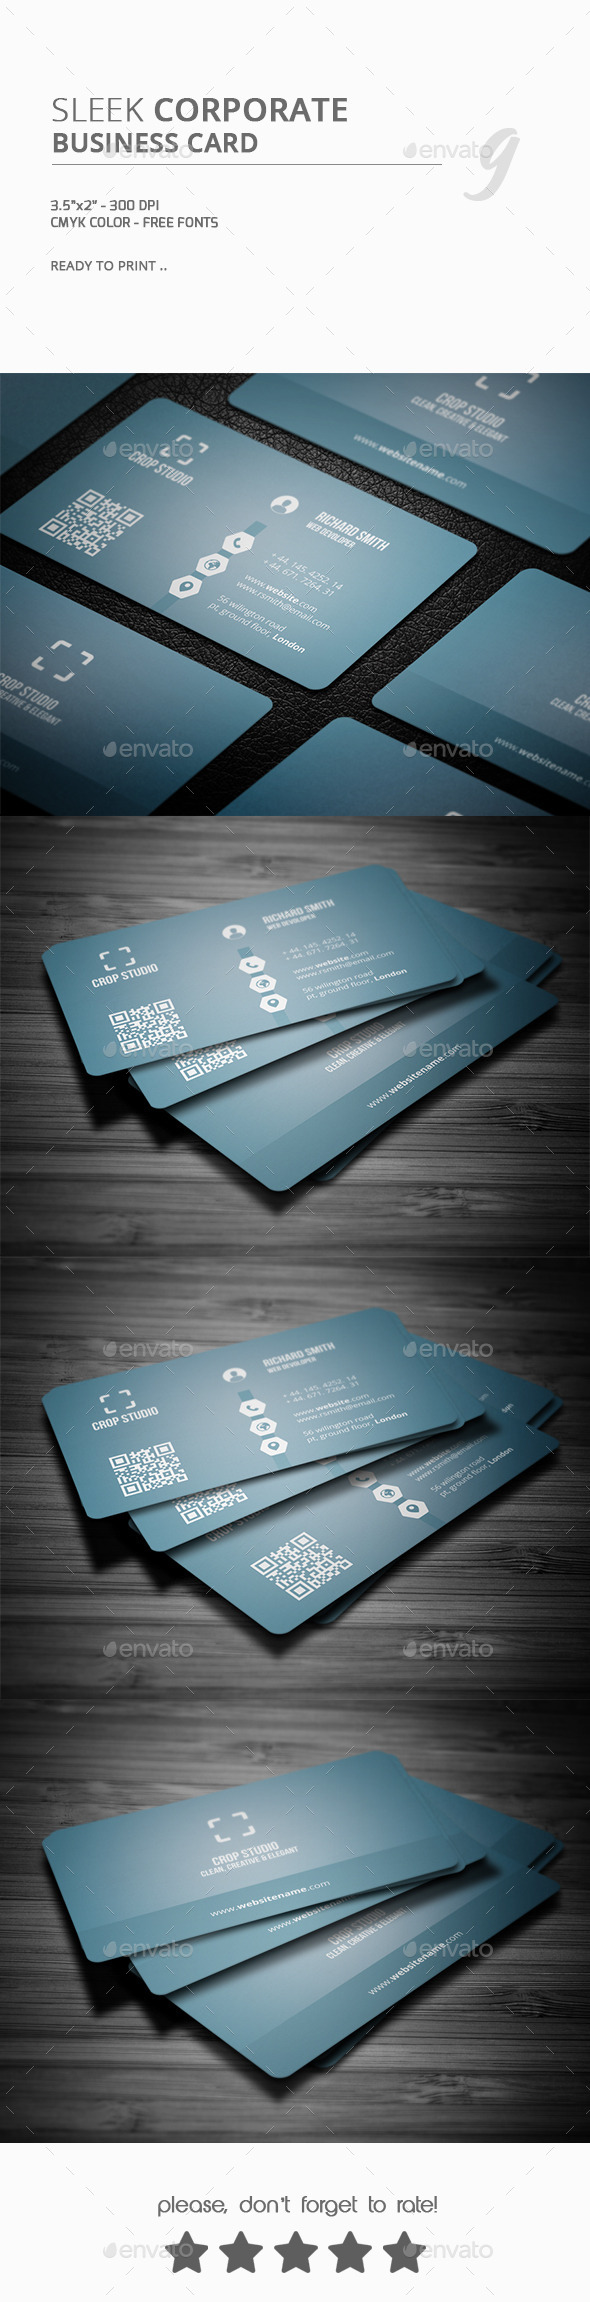 GraphicRiver Sleek Corporate Business Card 10169561